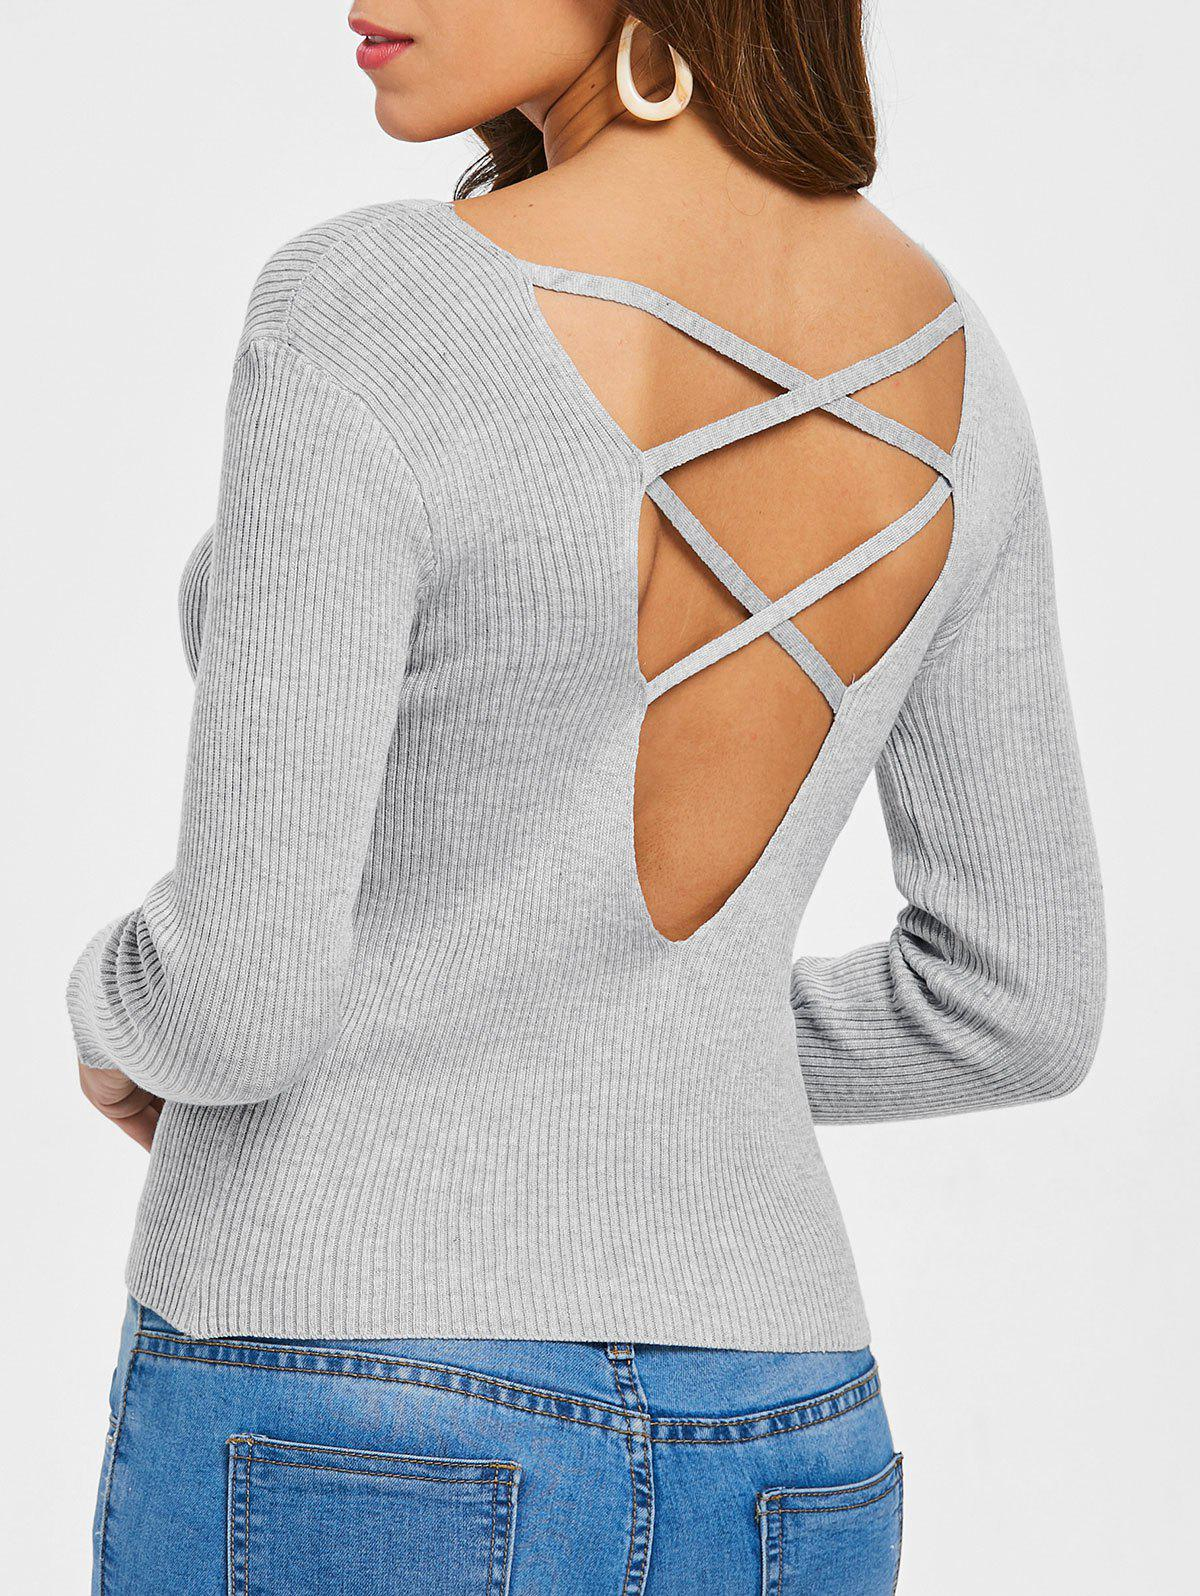 0c15da58c19beb 55% OFF ] 2019 Ribbed Back Criss Cross Sweater | Rosegal.com